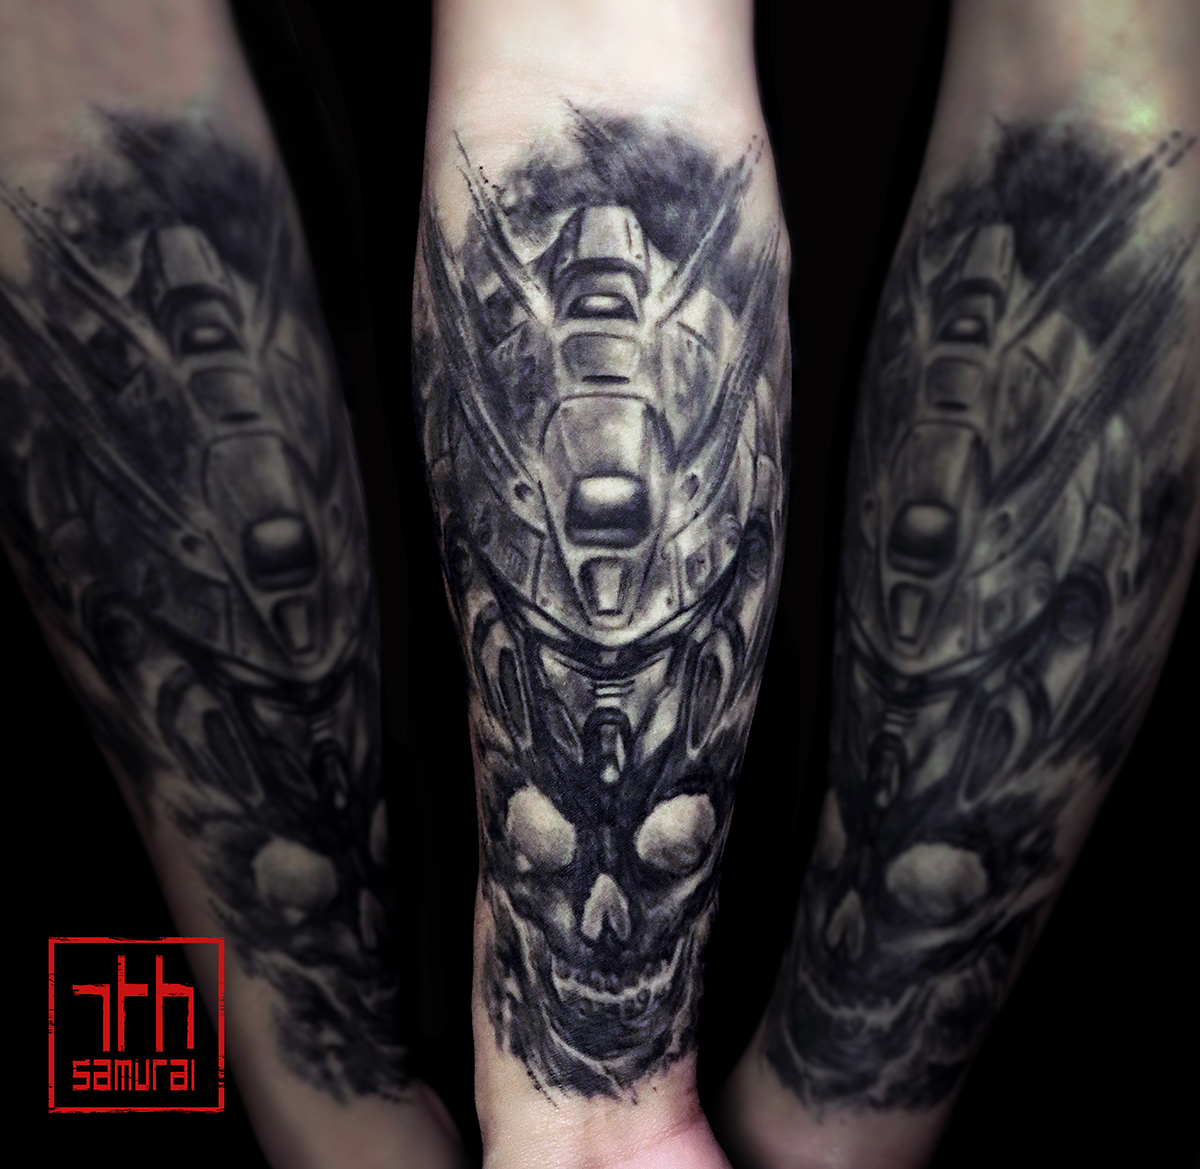 Men's Gundam mobile suit sumi style watercolor brush skull kai 7th samurai edmonton best anime tattoo 2019